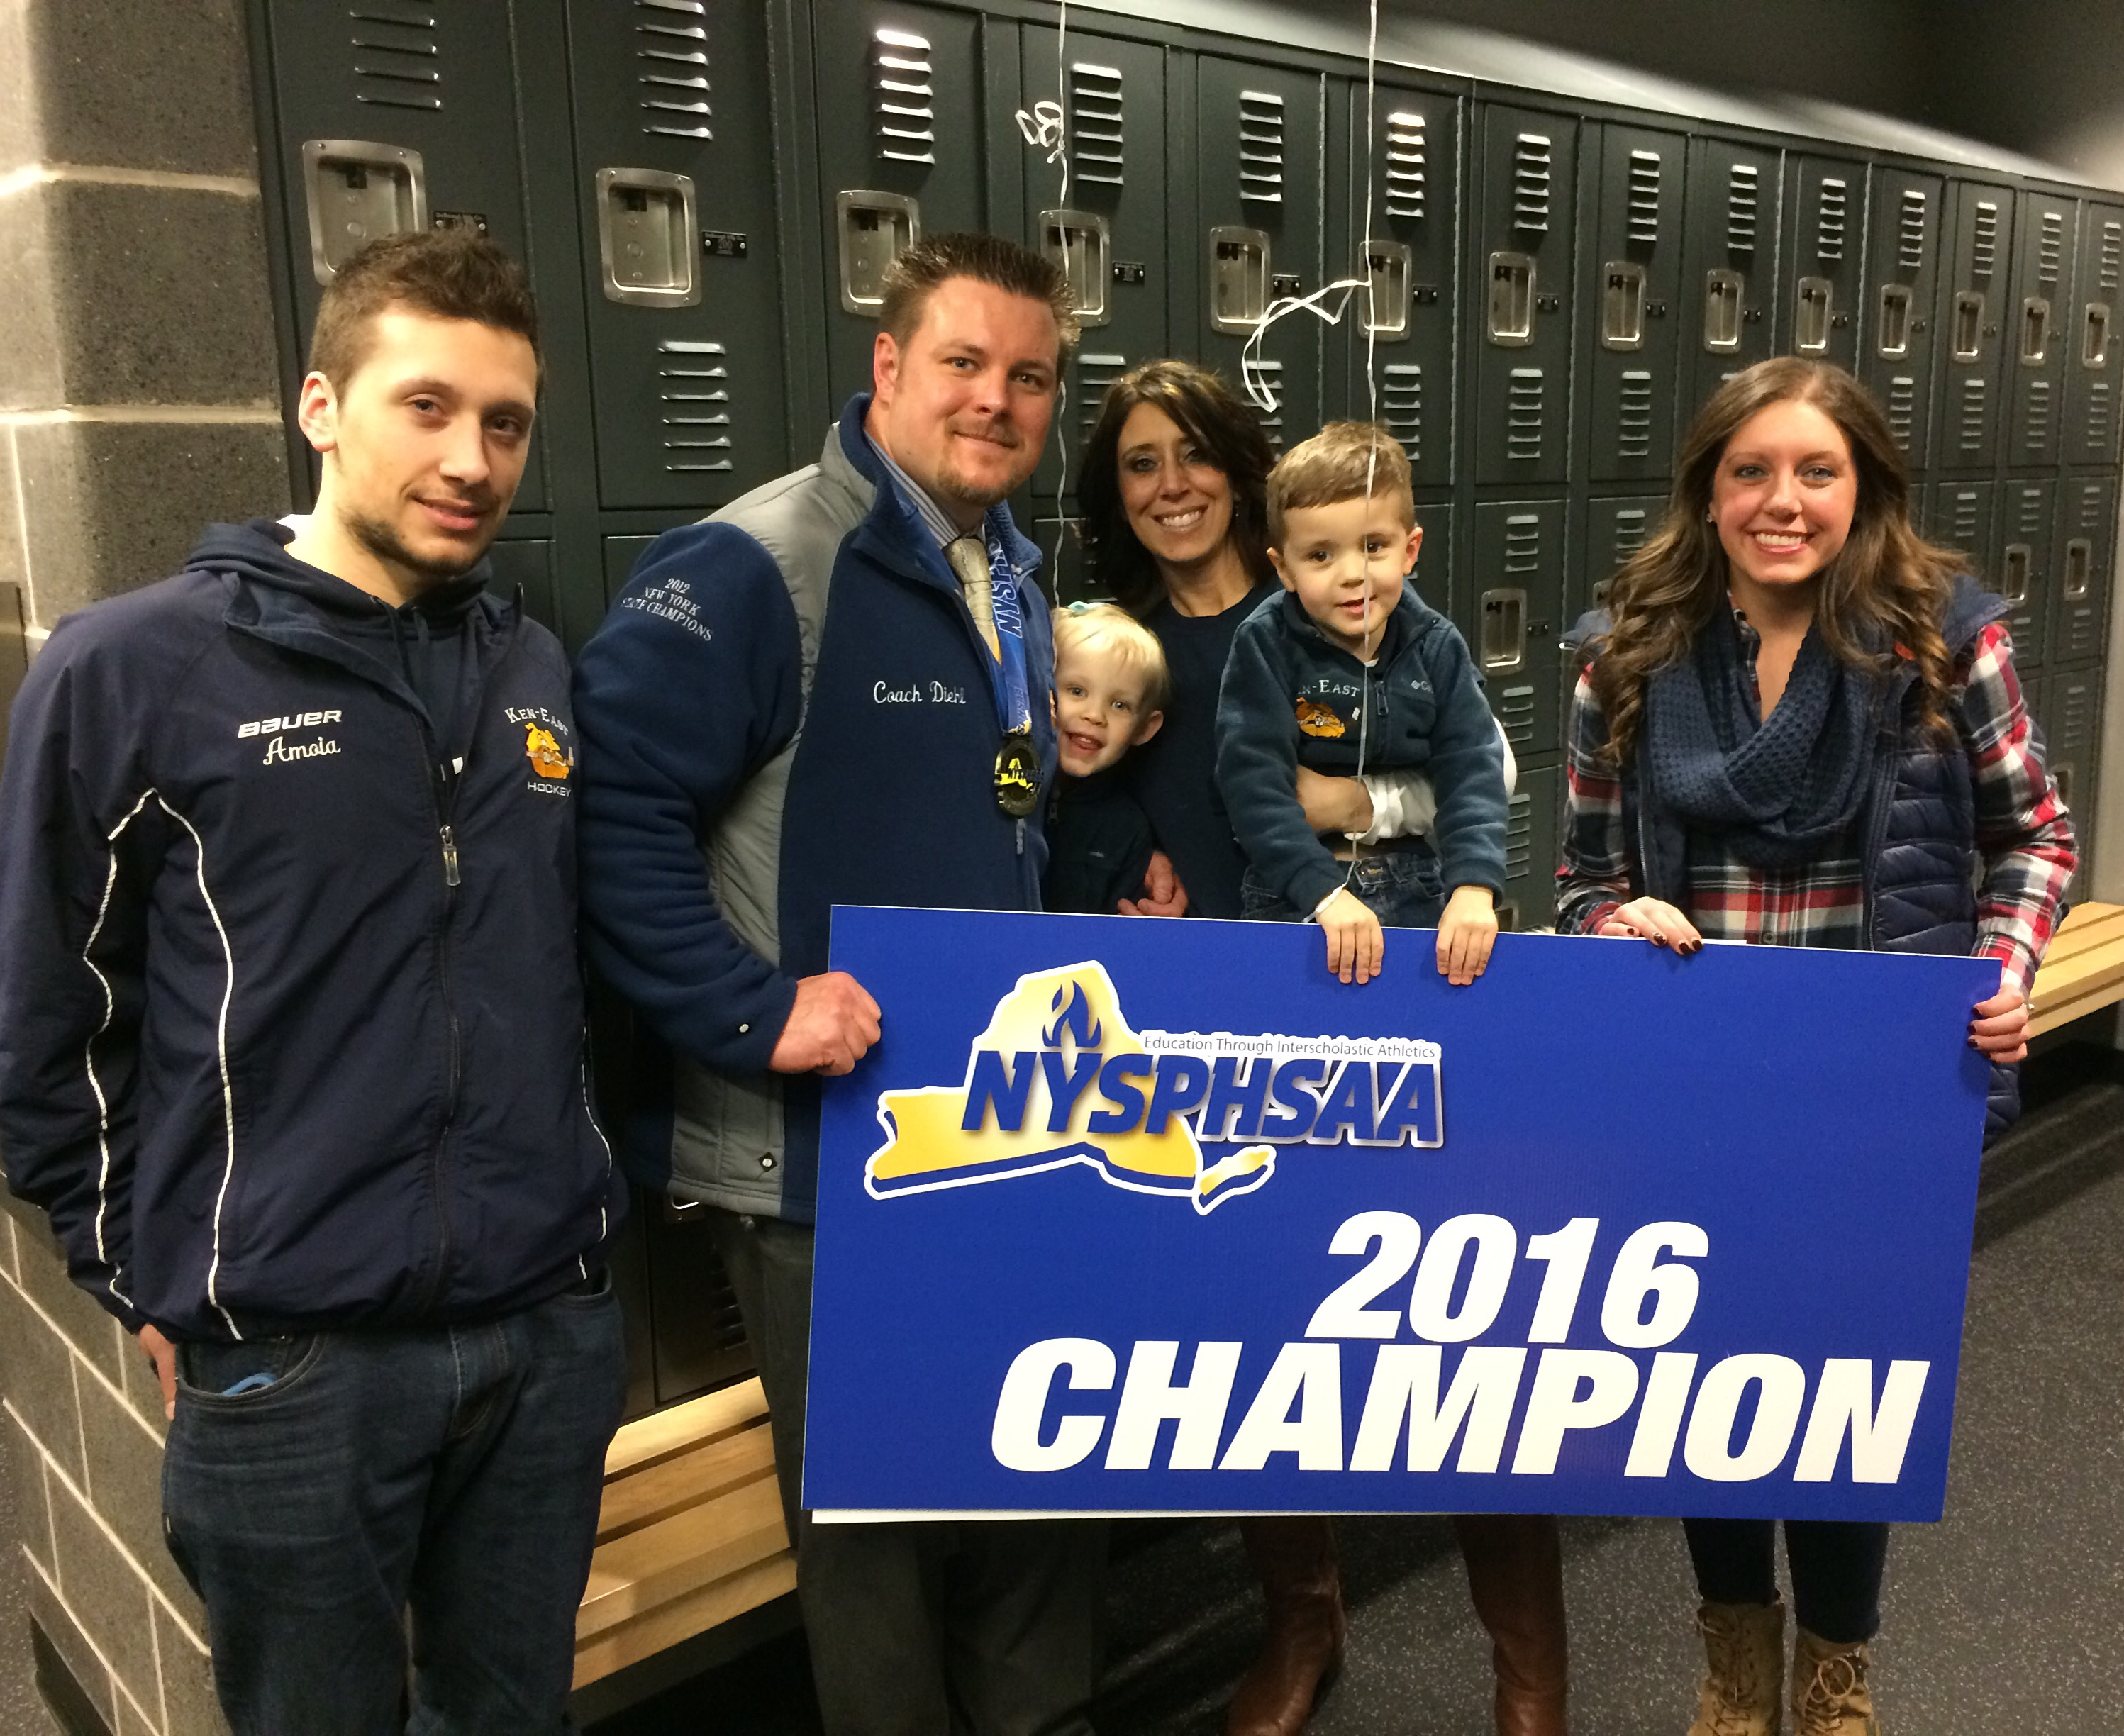 Thomas Diehl Sr.'s family celebrates his 2016 state hockey championship, from left, Tony, Thomas, Teagan, Dawn , T.J. and Summer.